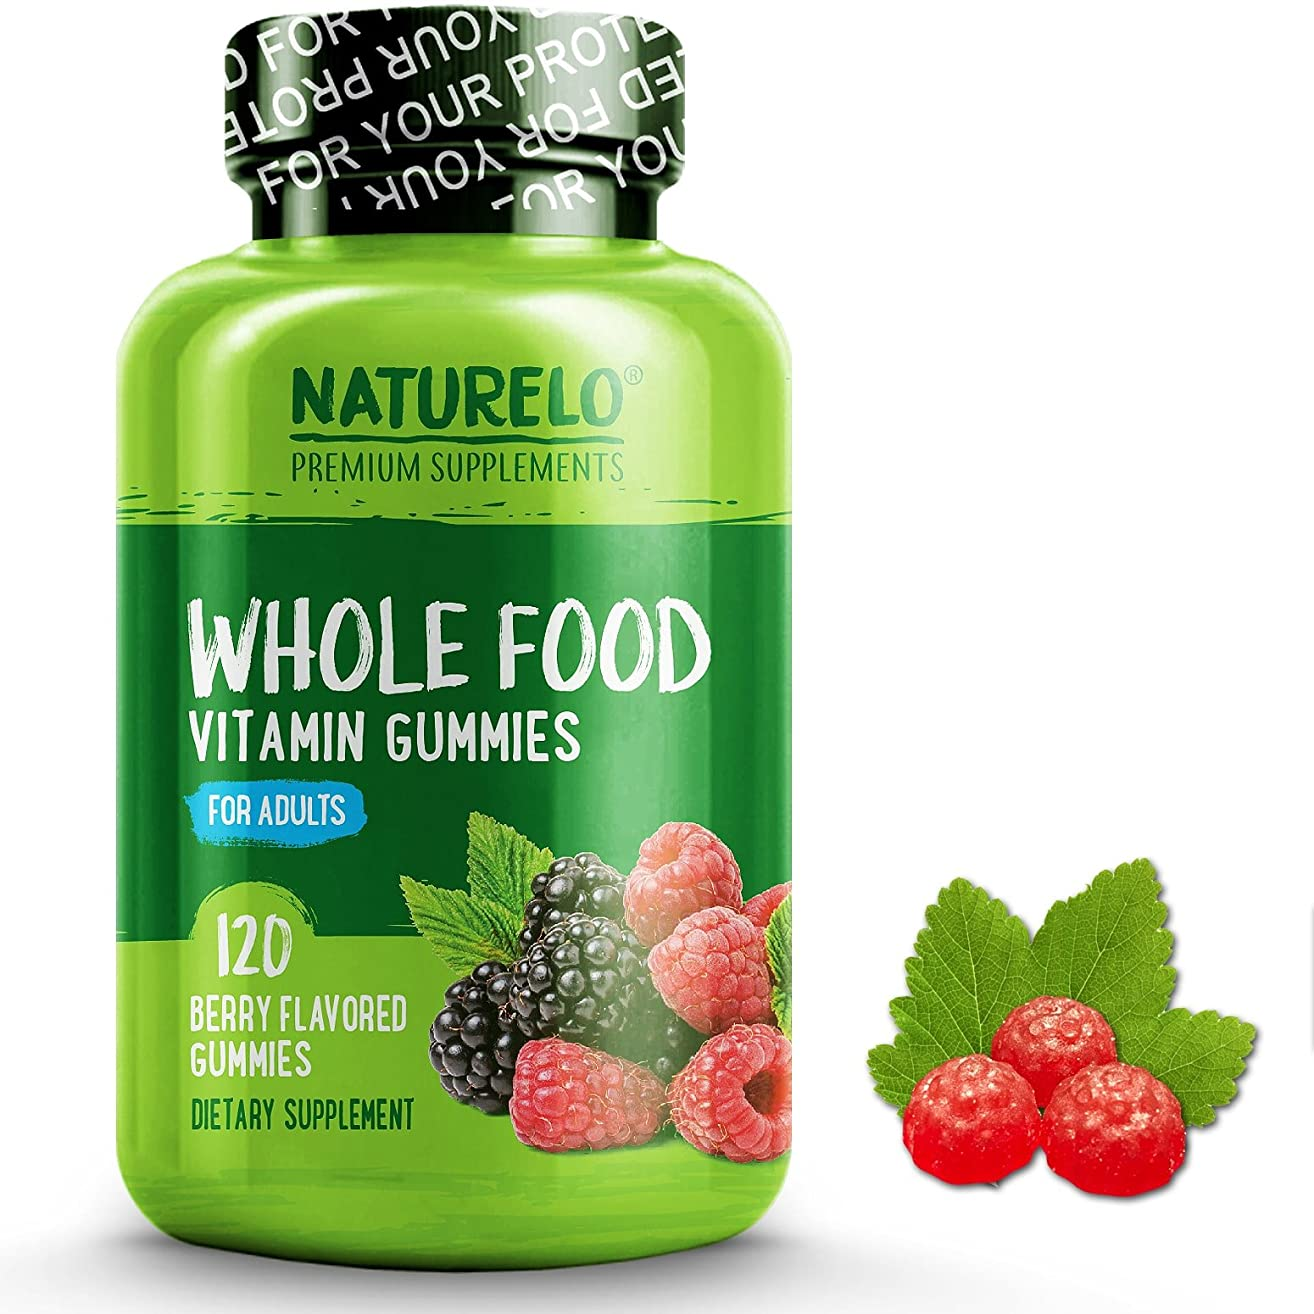 NATURELO Whole Food Vitamin Gummies for Adults - Chewable Gummy Multivitamin for Men - Organic Great Tasting Berry Flavor - 120 Gummies